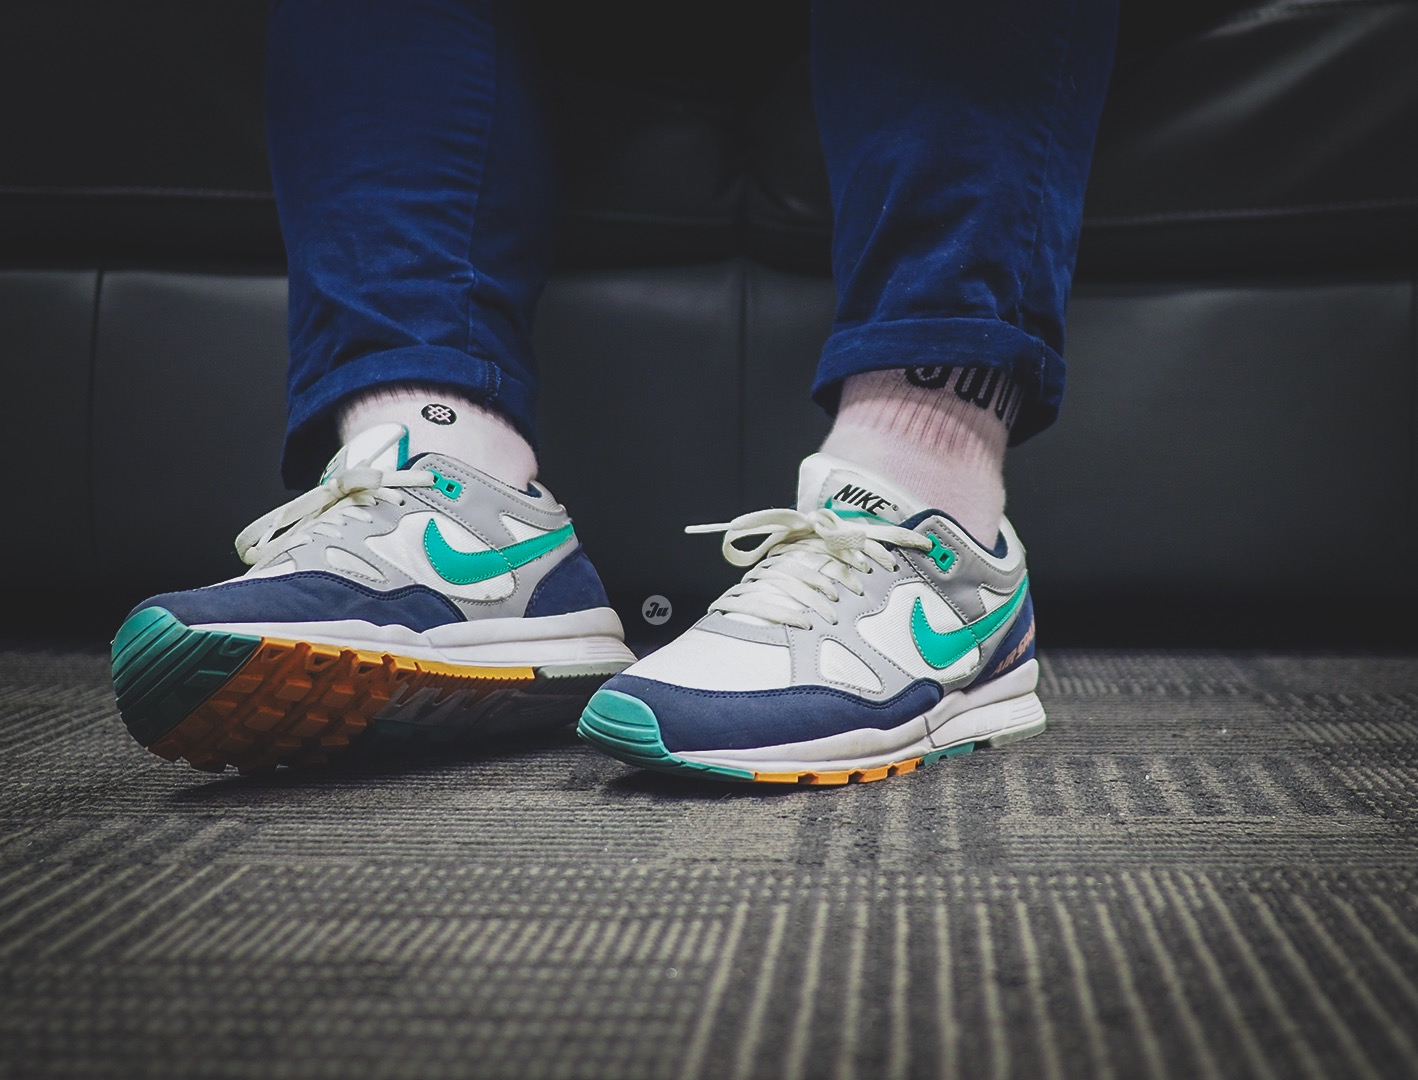 bcf1dd856a9 Favourite of 2018  Nike Air Span II in Kinetic Green